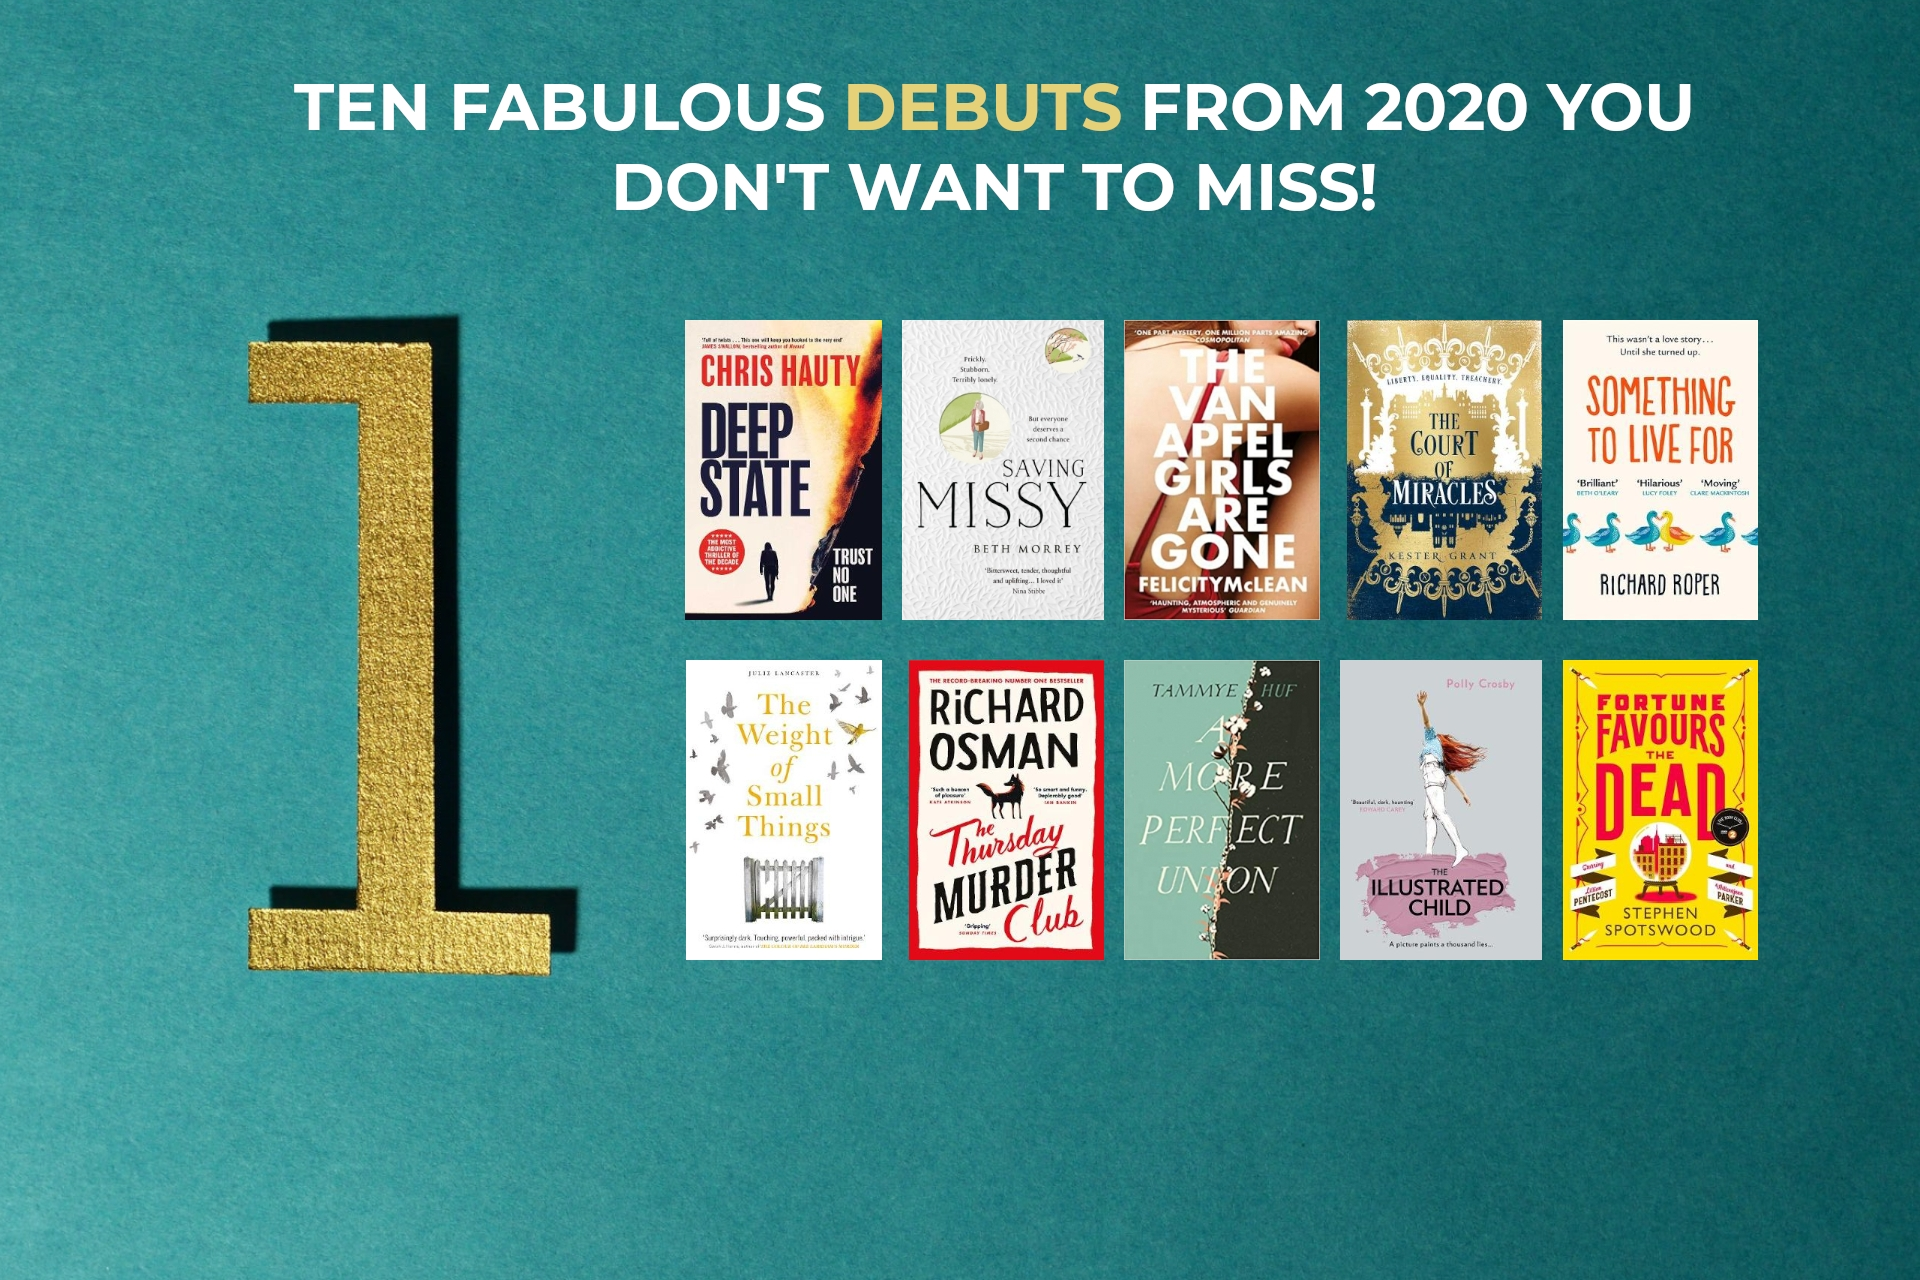 10 Fabulous Debuts from 2020 You Won't Want to Miss!